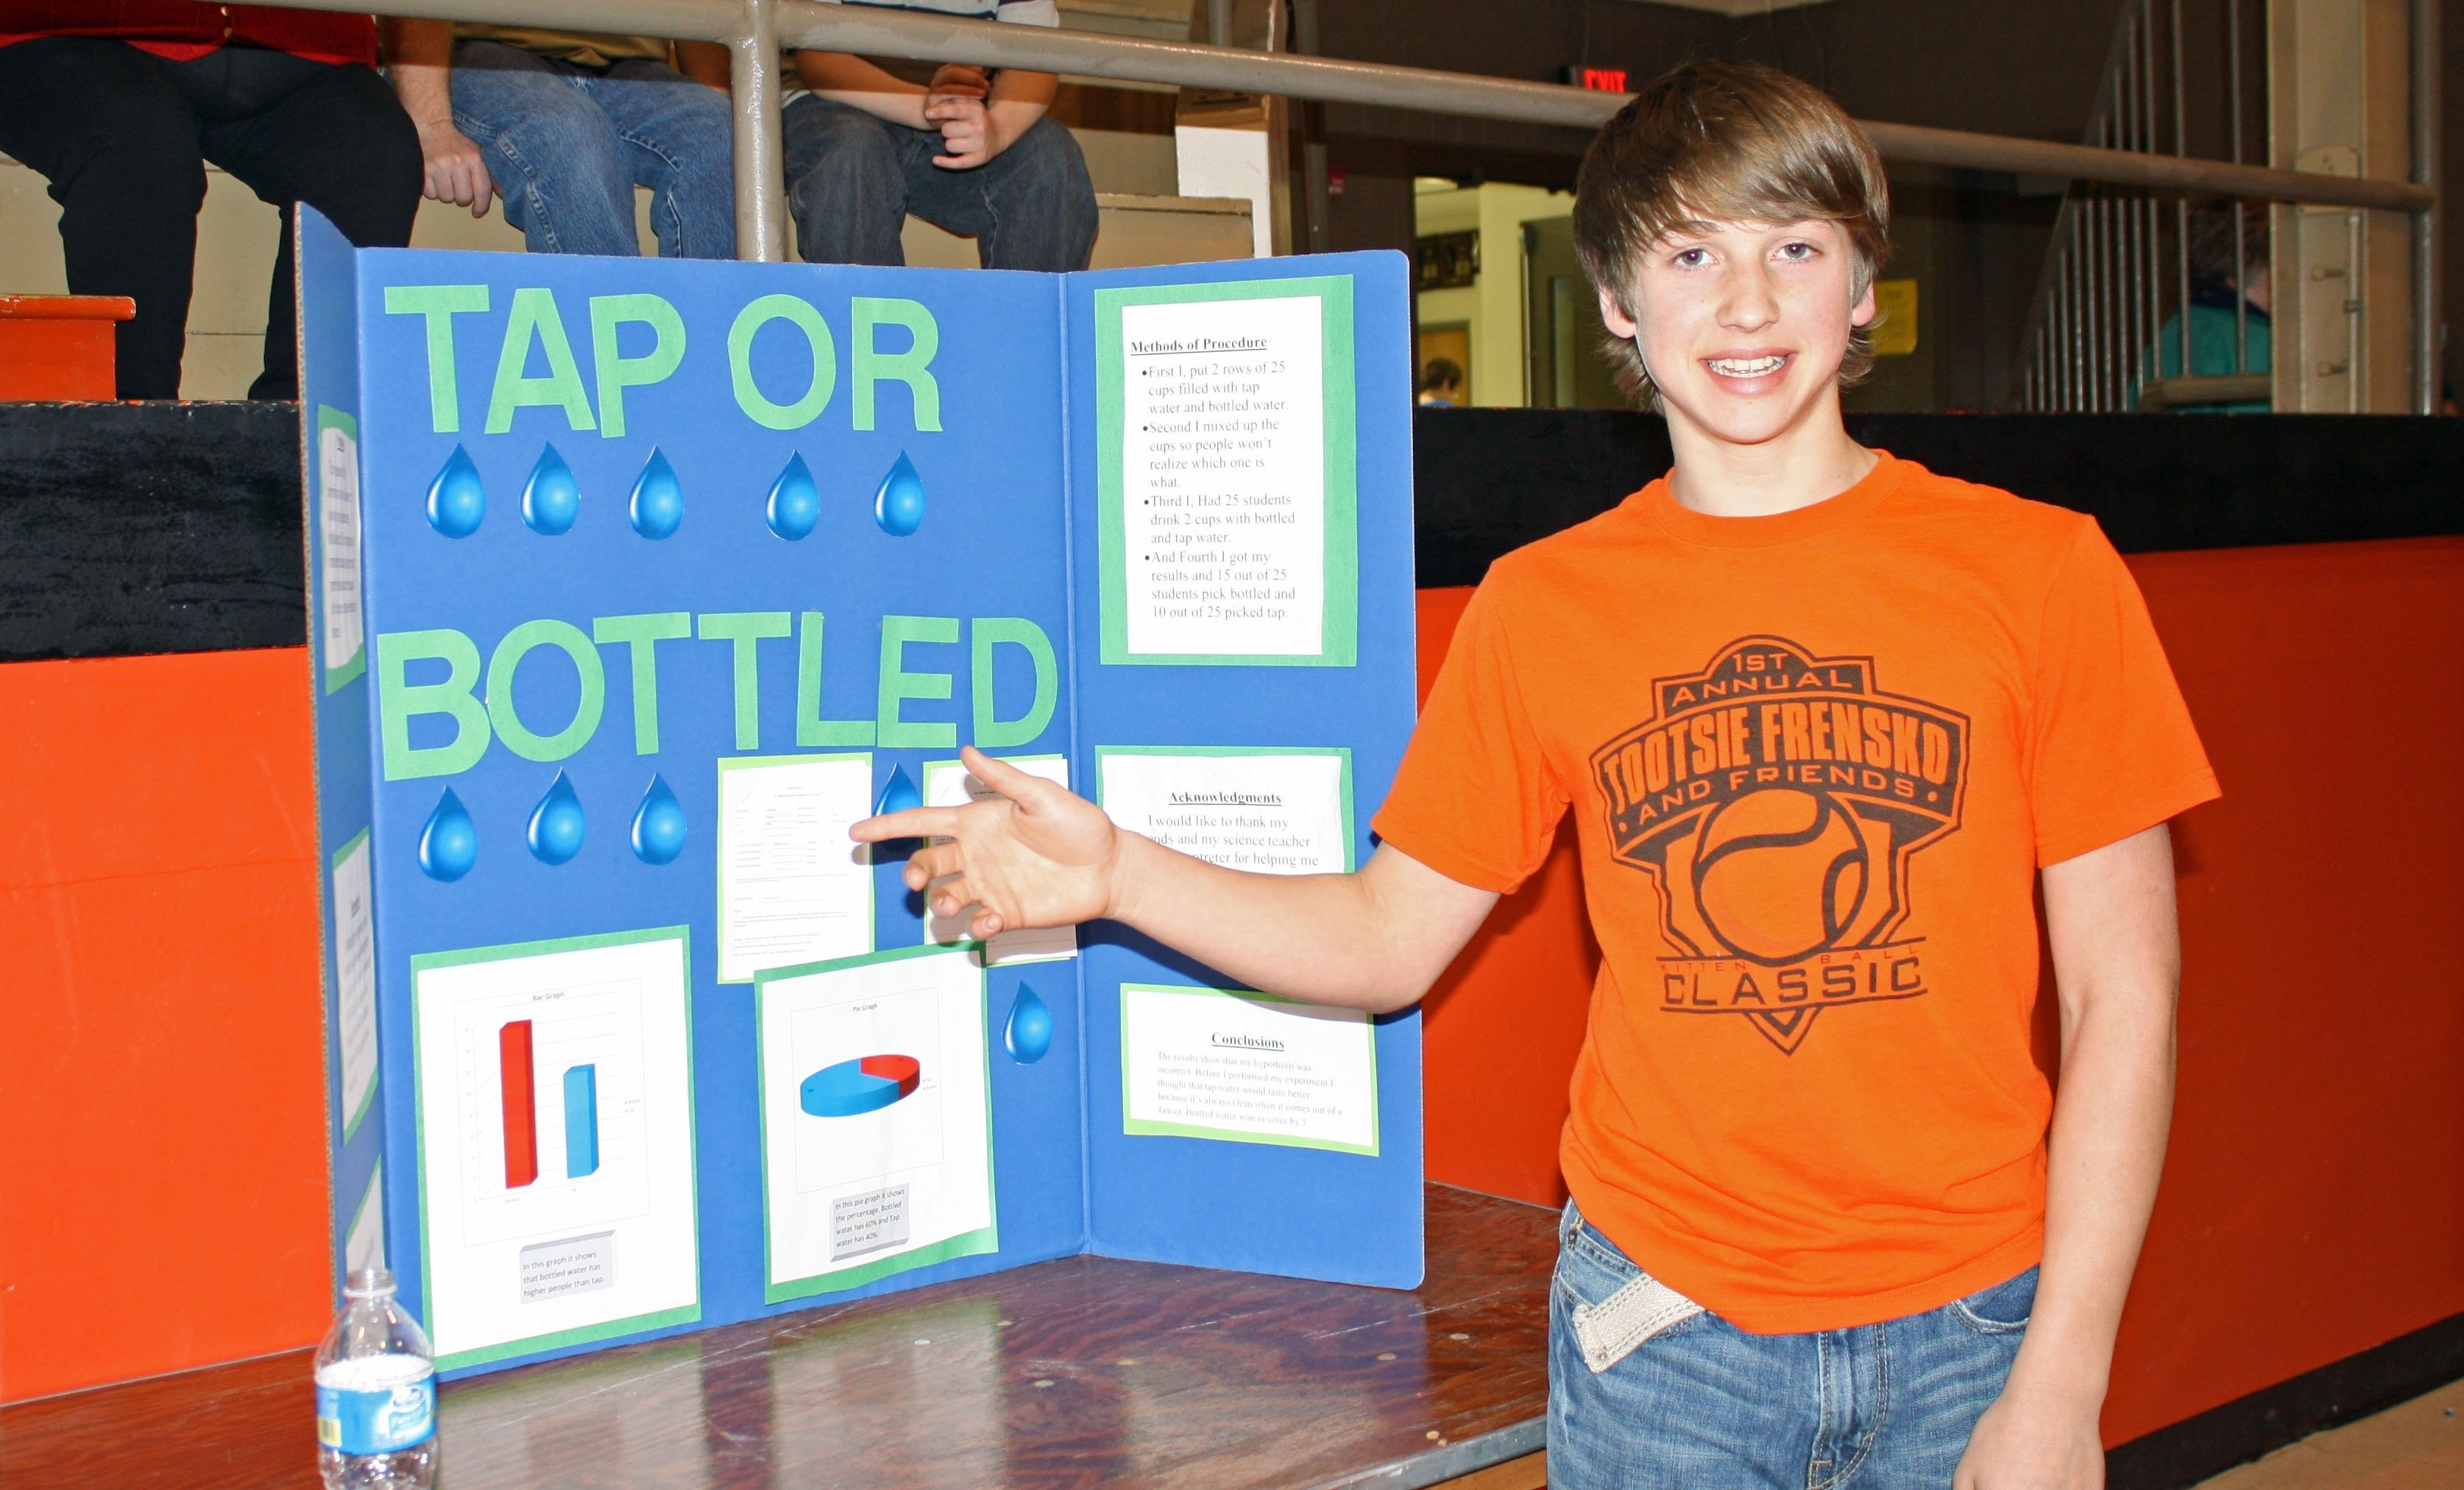 10 Famous Science Fair Project Ideas For 8Th Grade 8 grade science fair projects essay academic service 7 2021